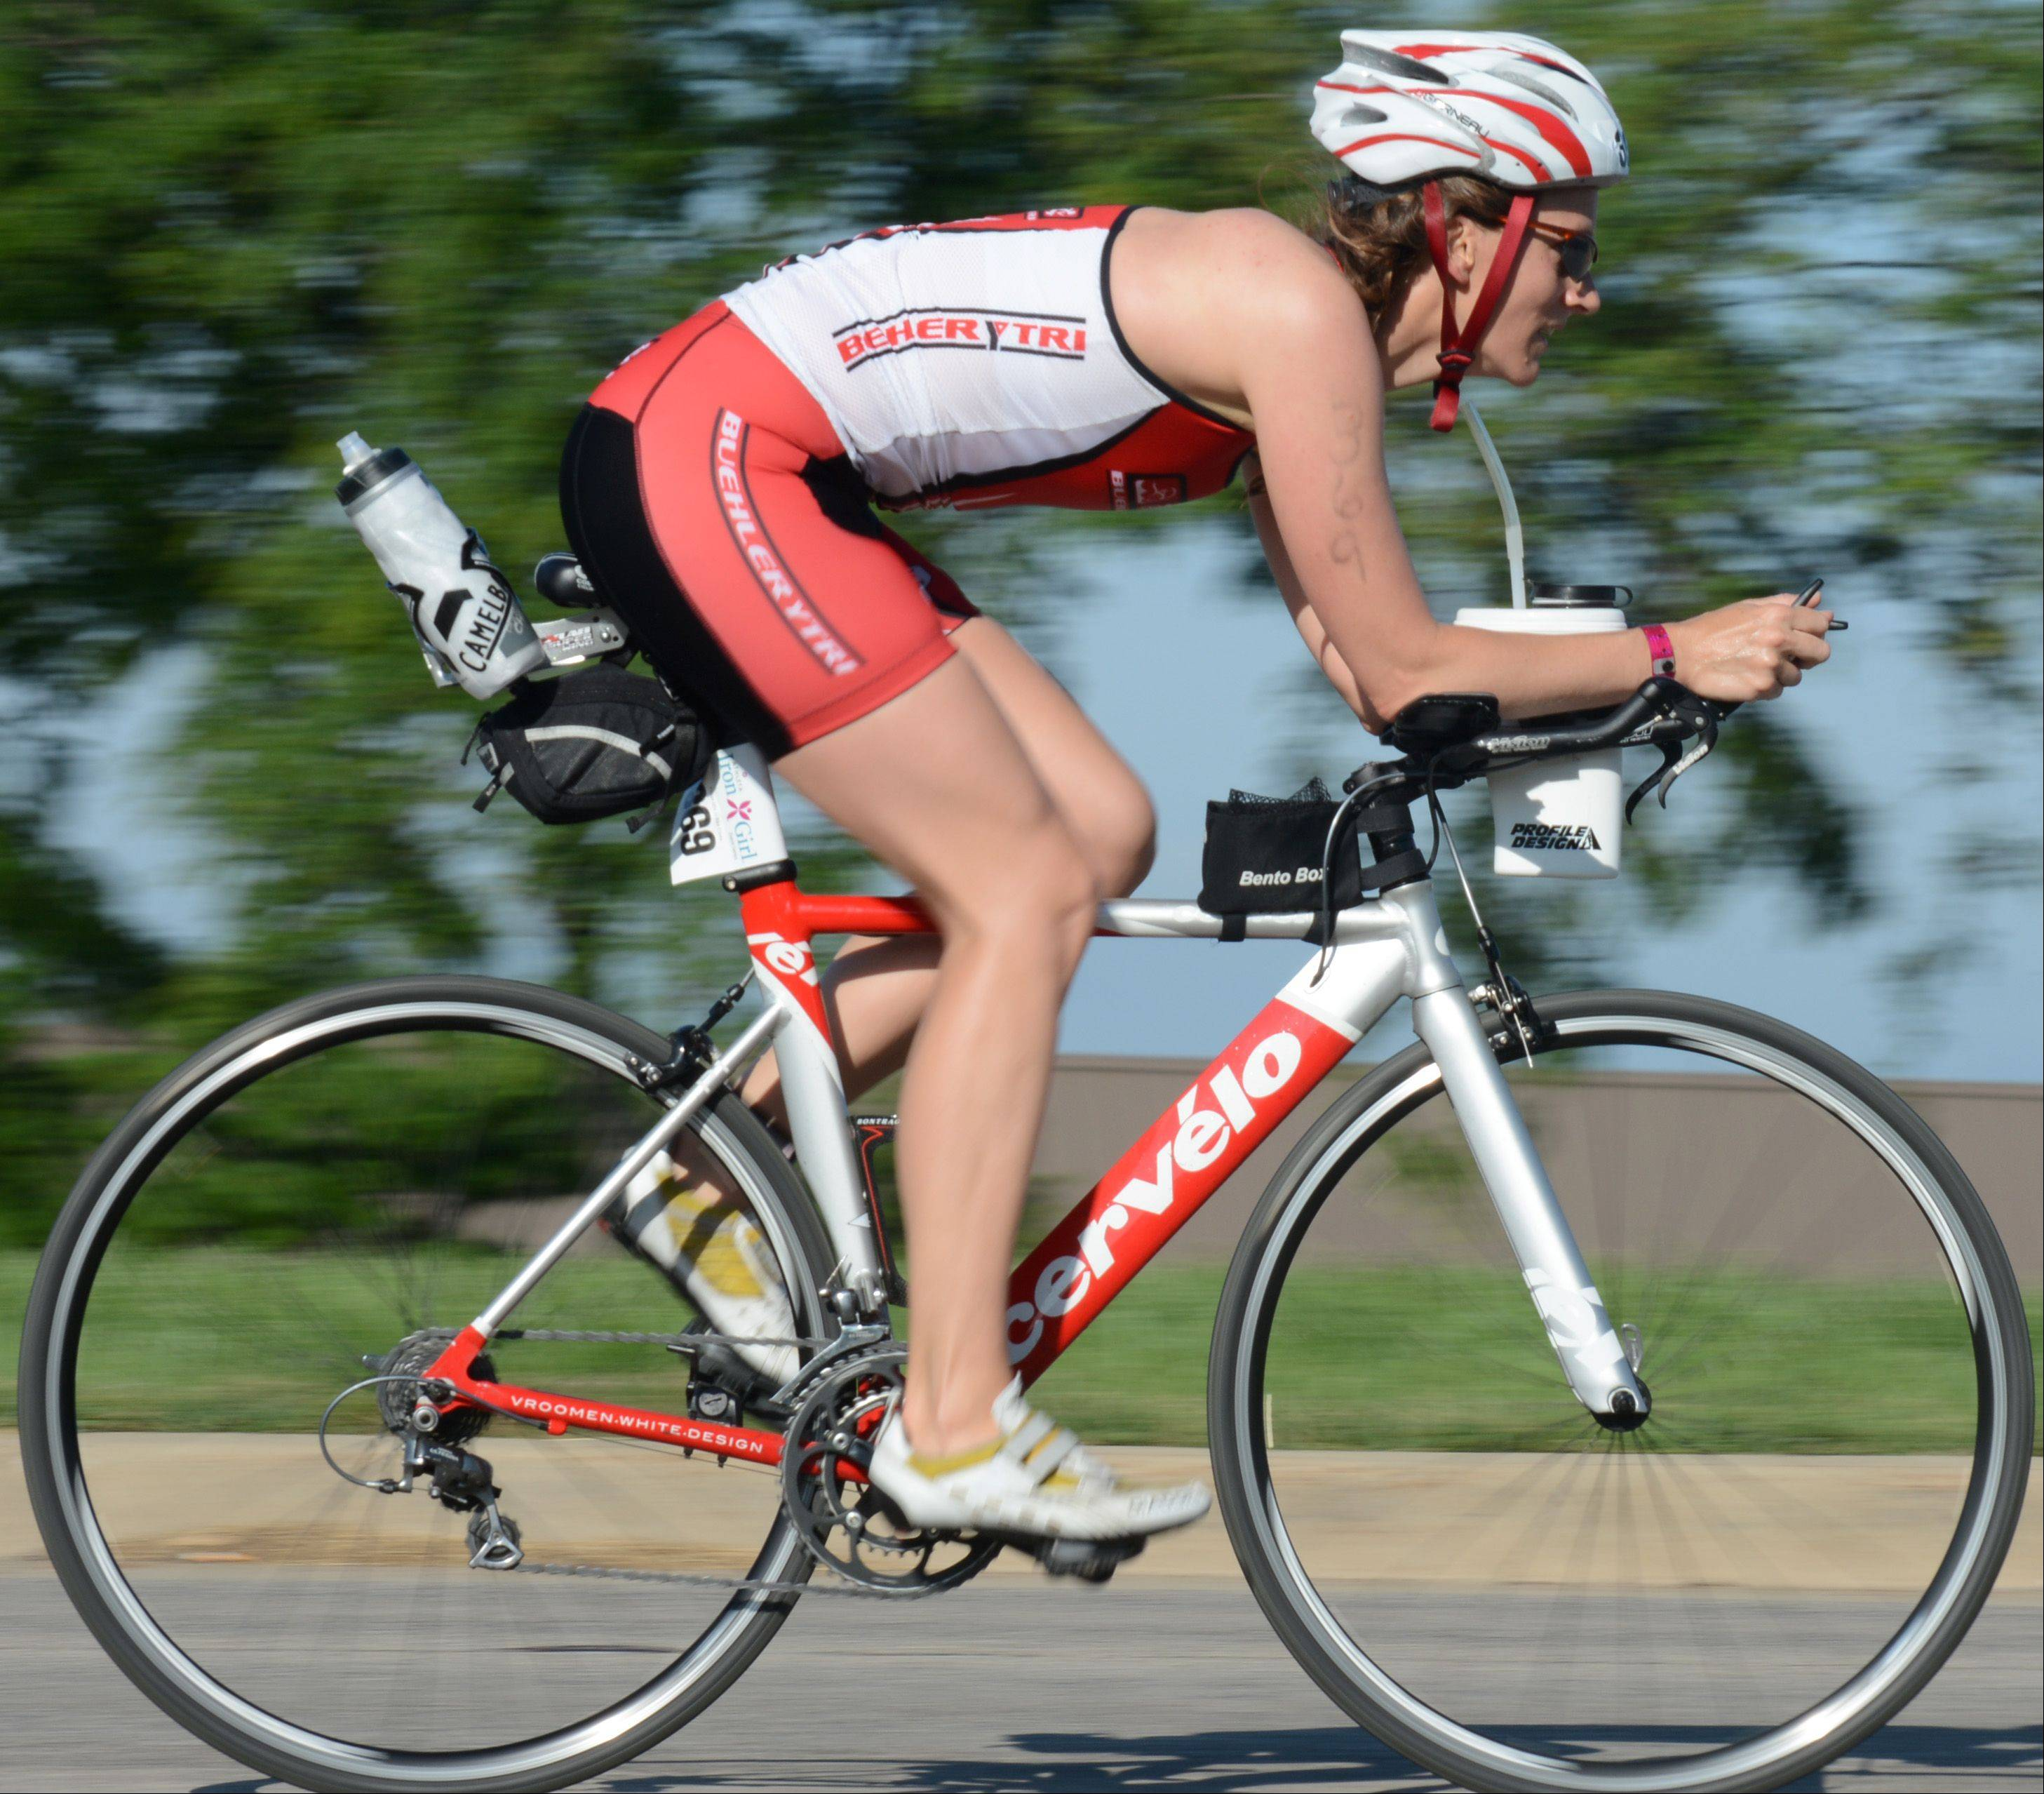 Marsha McCreary, of Barrington, bikes during the Athleta Iron Girl Triathlon in Lake Zurich Sunday.